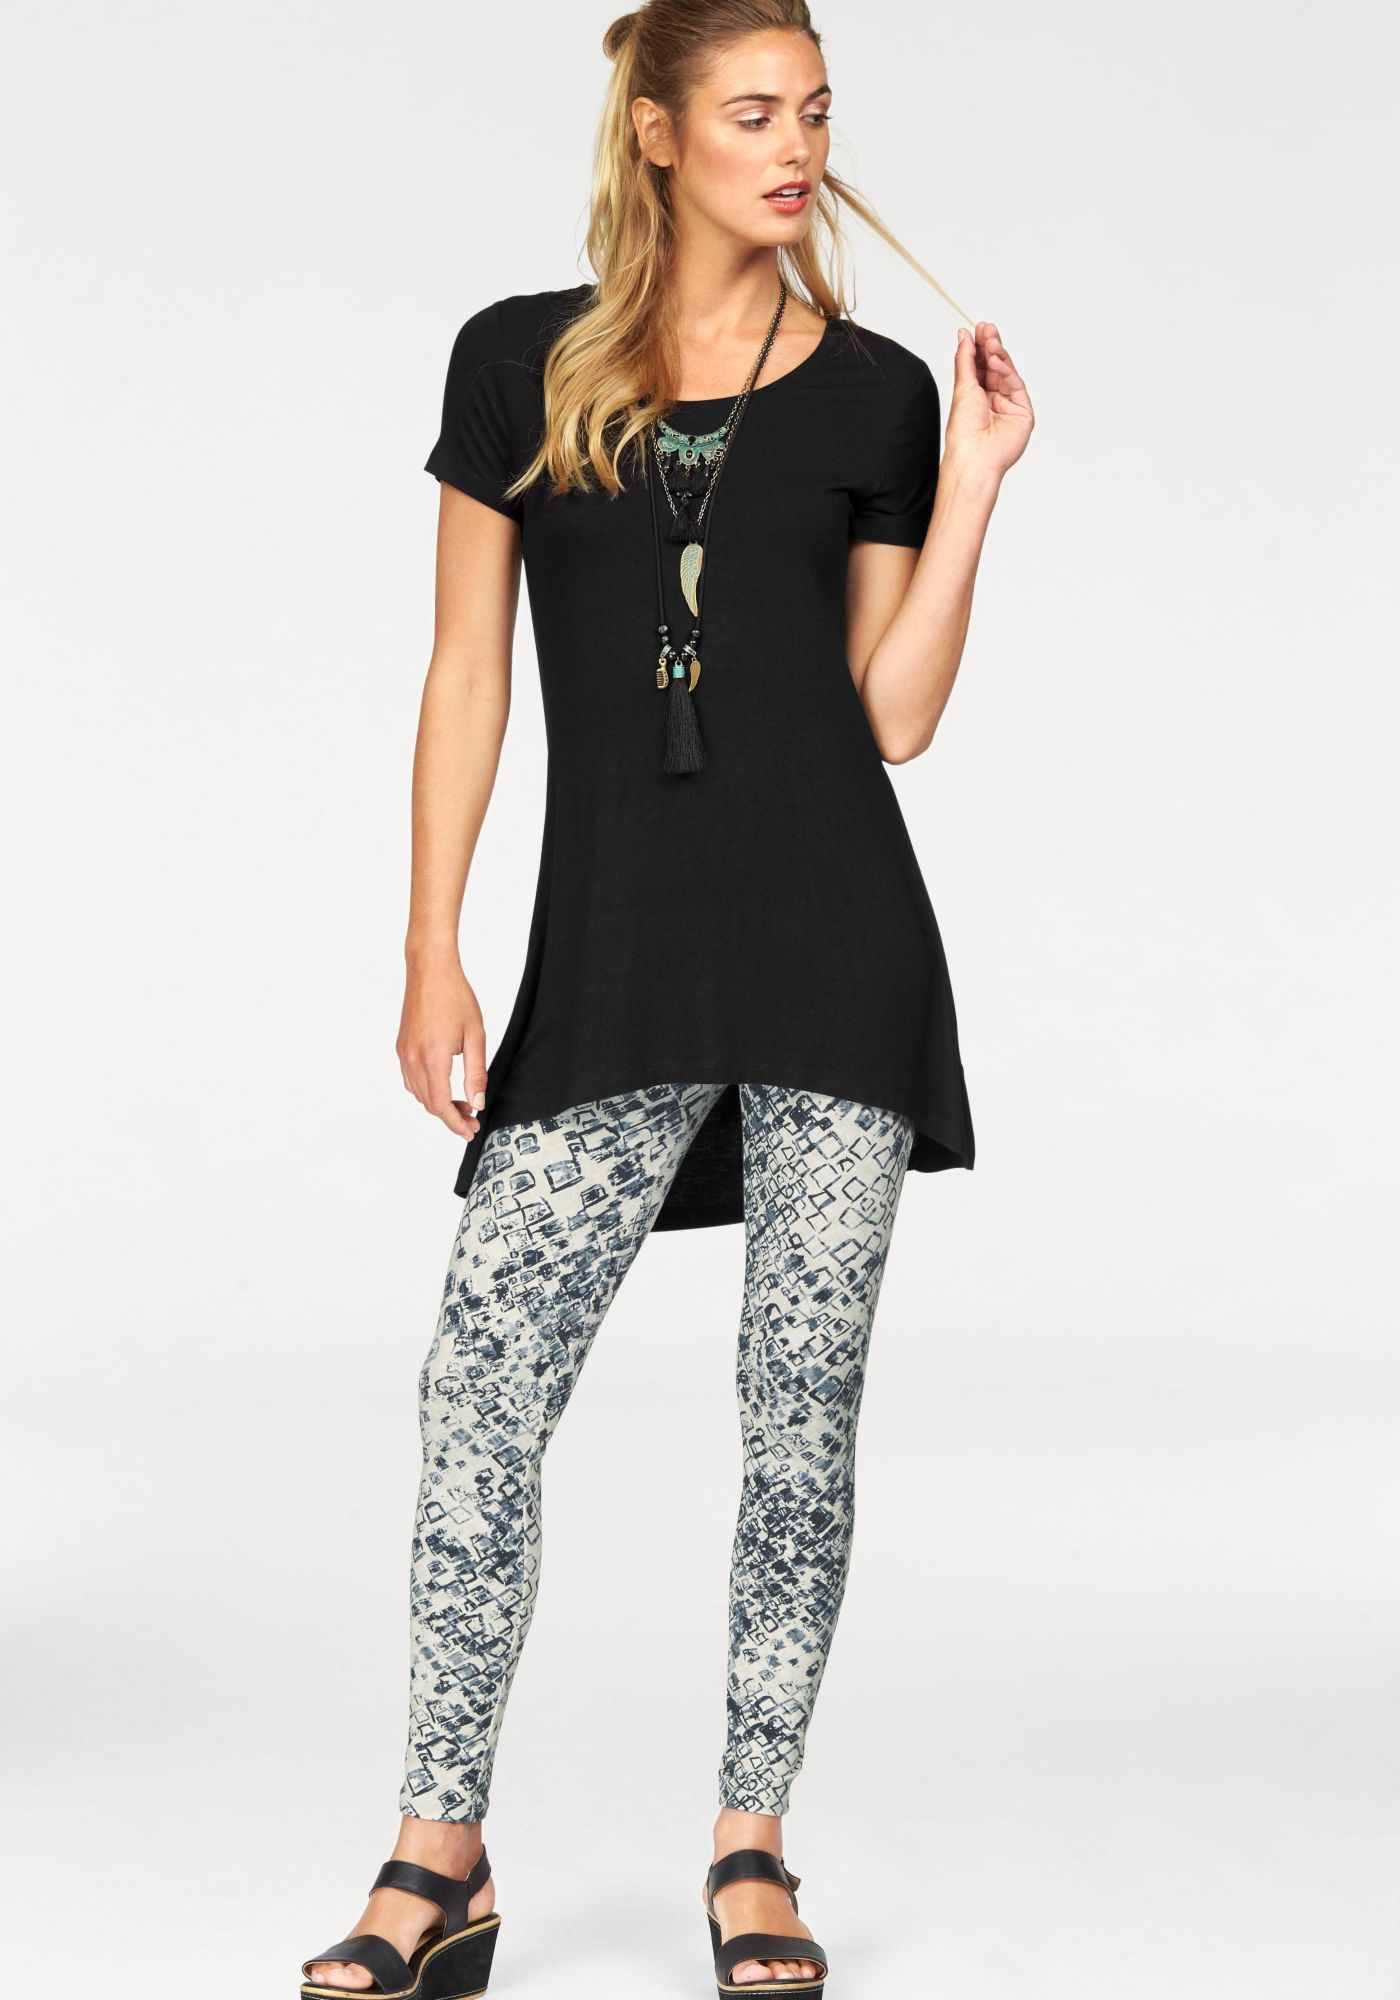 FLG FLASHLIGHTS Flashlights Longshirt »Vokuhila« (Set, mit Leggings)